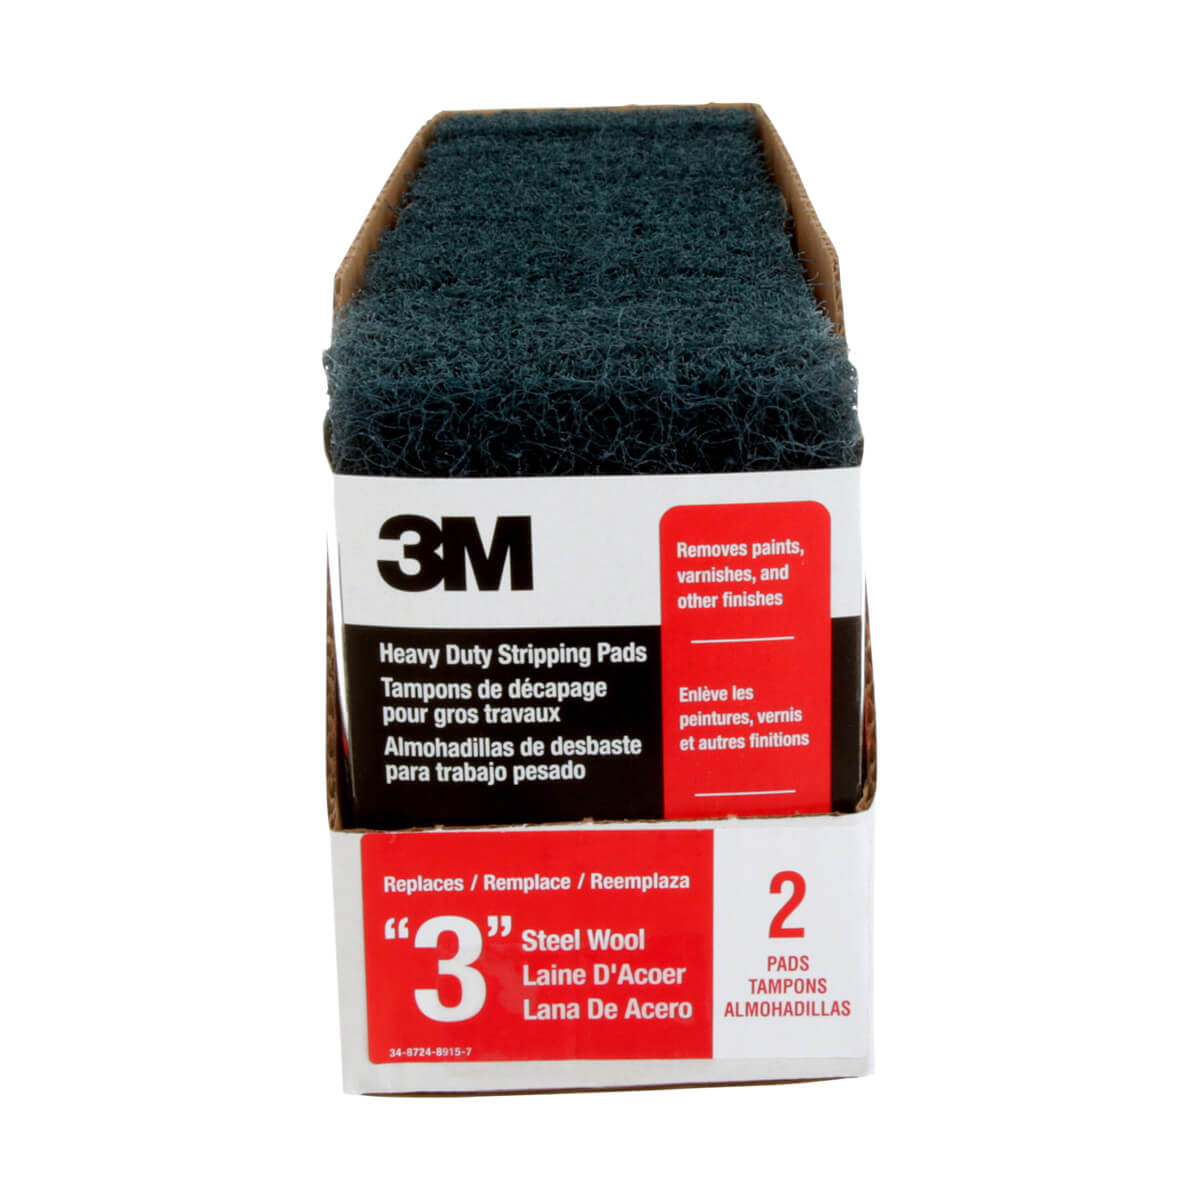 3M Heavy Duty Stripping Pad 10111NA - 2 pack